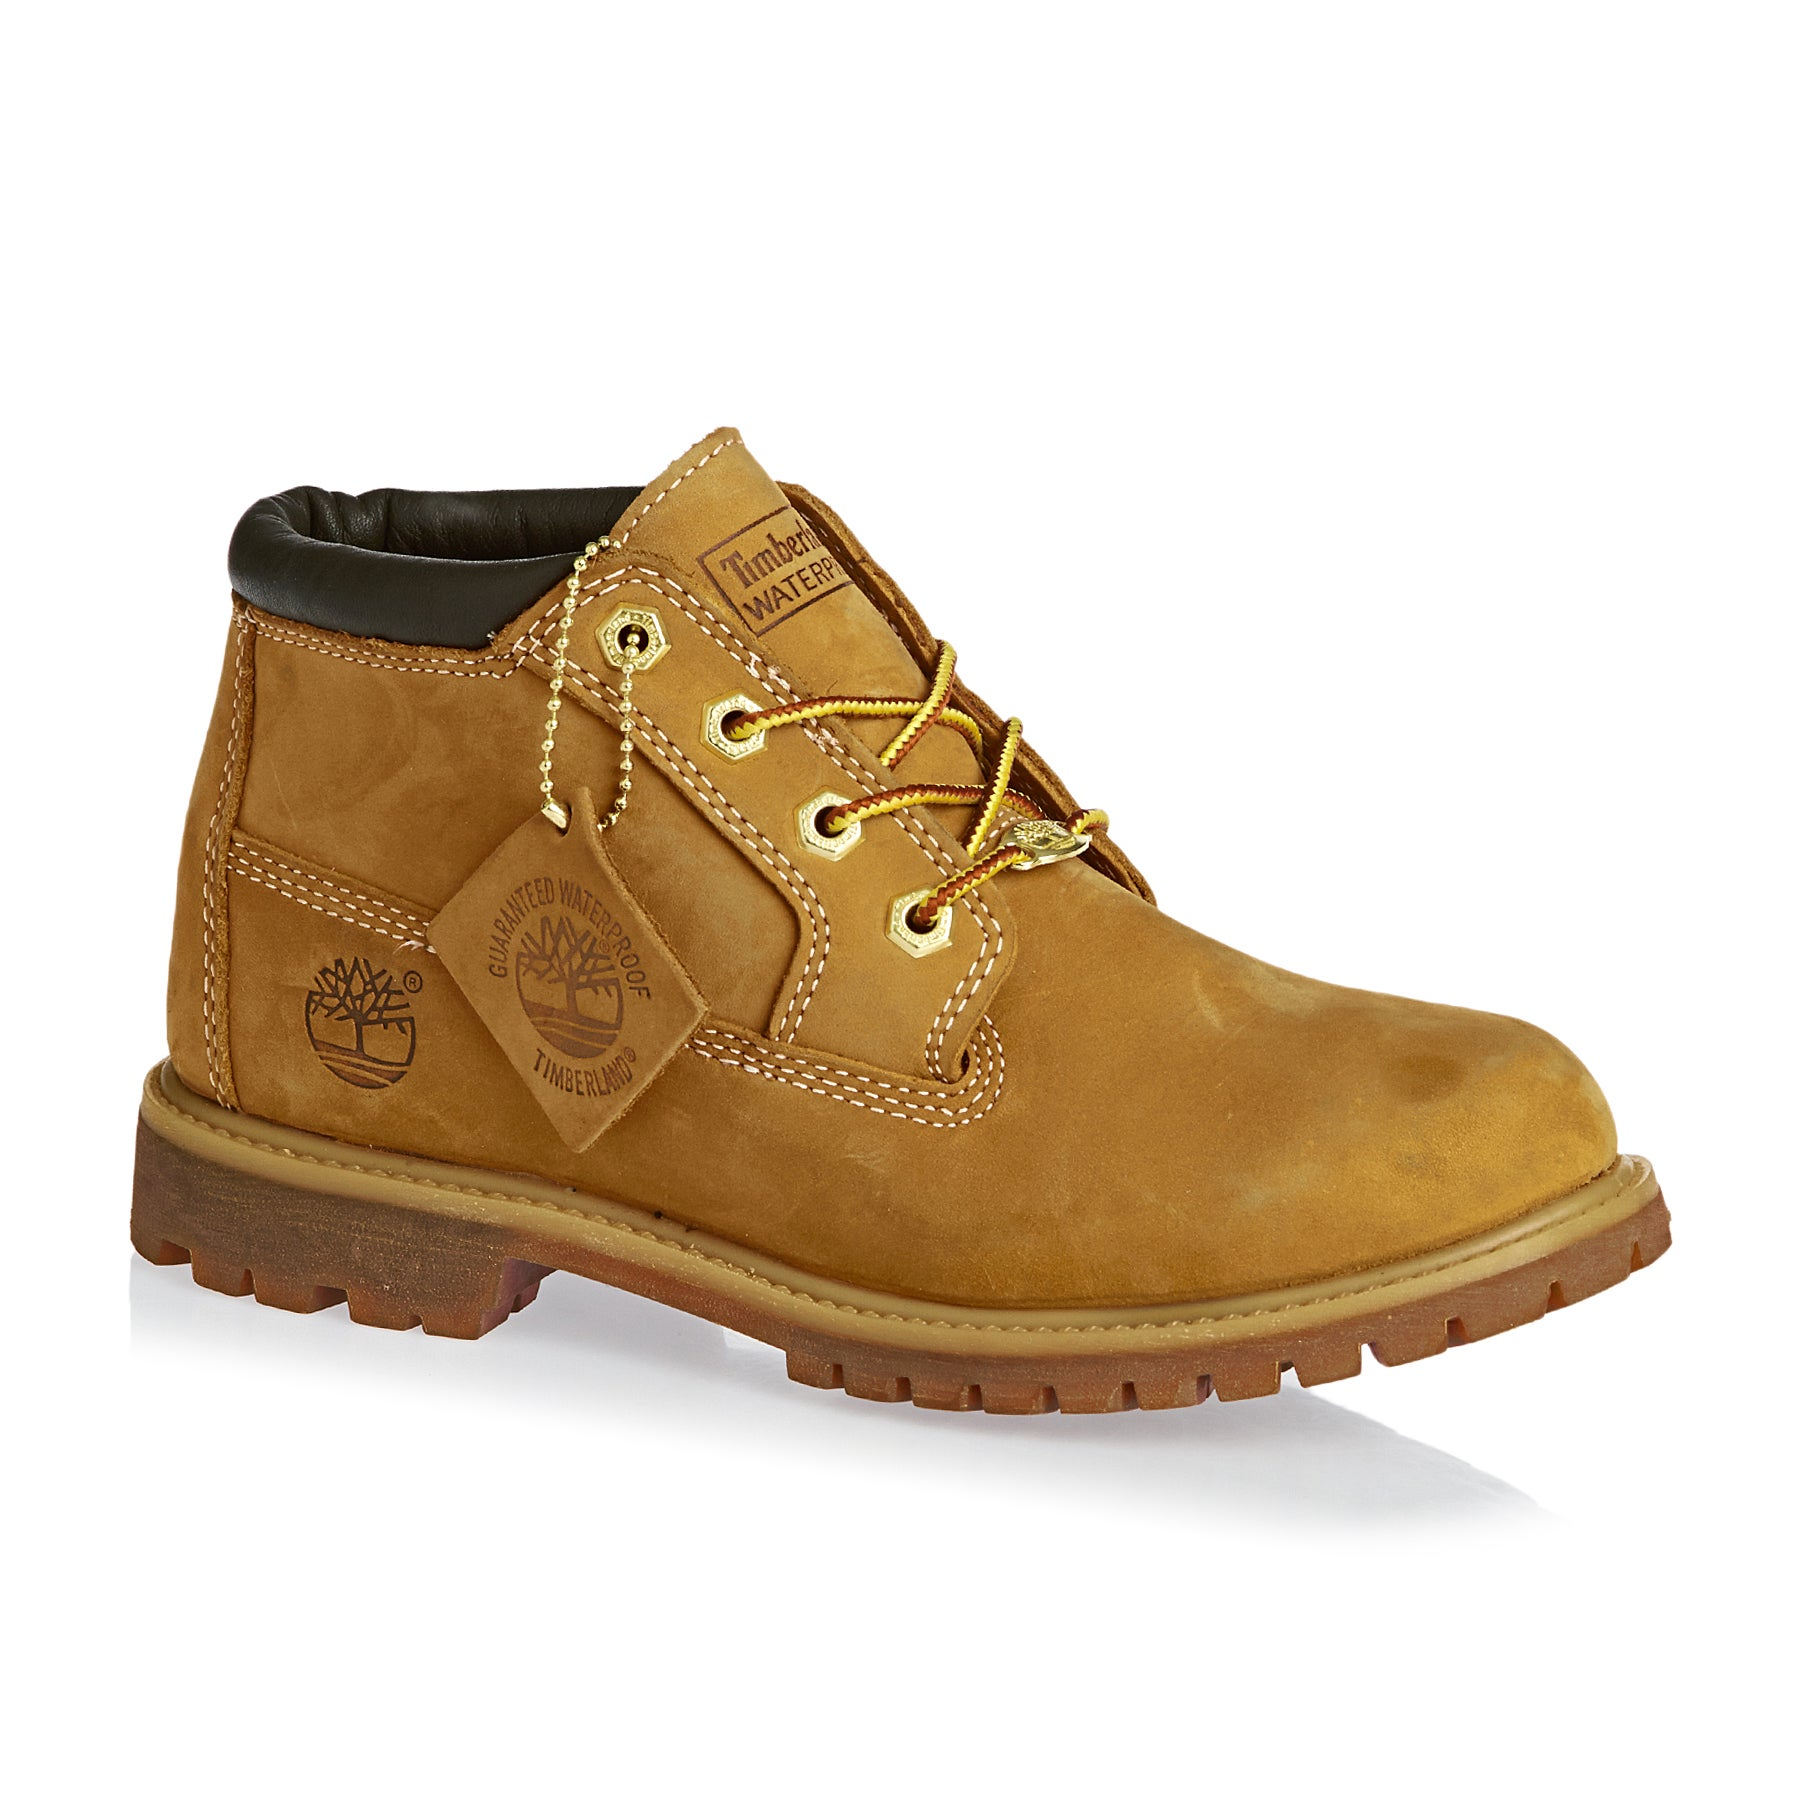 b3ba9fb1653 Bottes Femme Timberland Earthkeepers Nellie Chukka Double WTPF ...